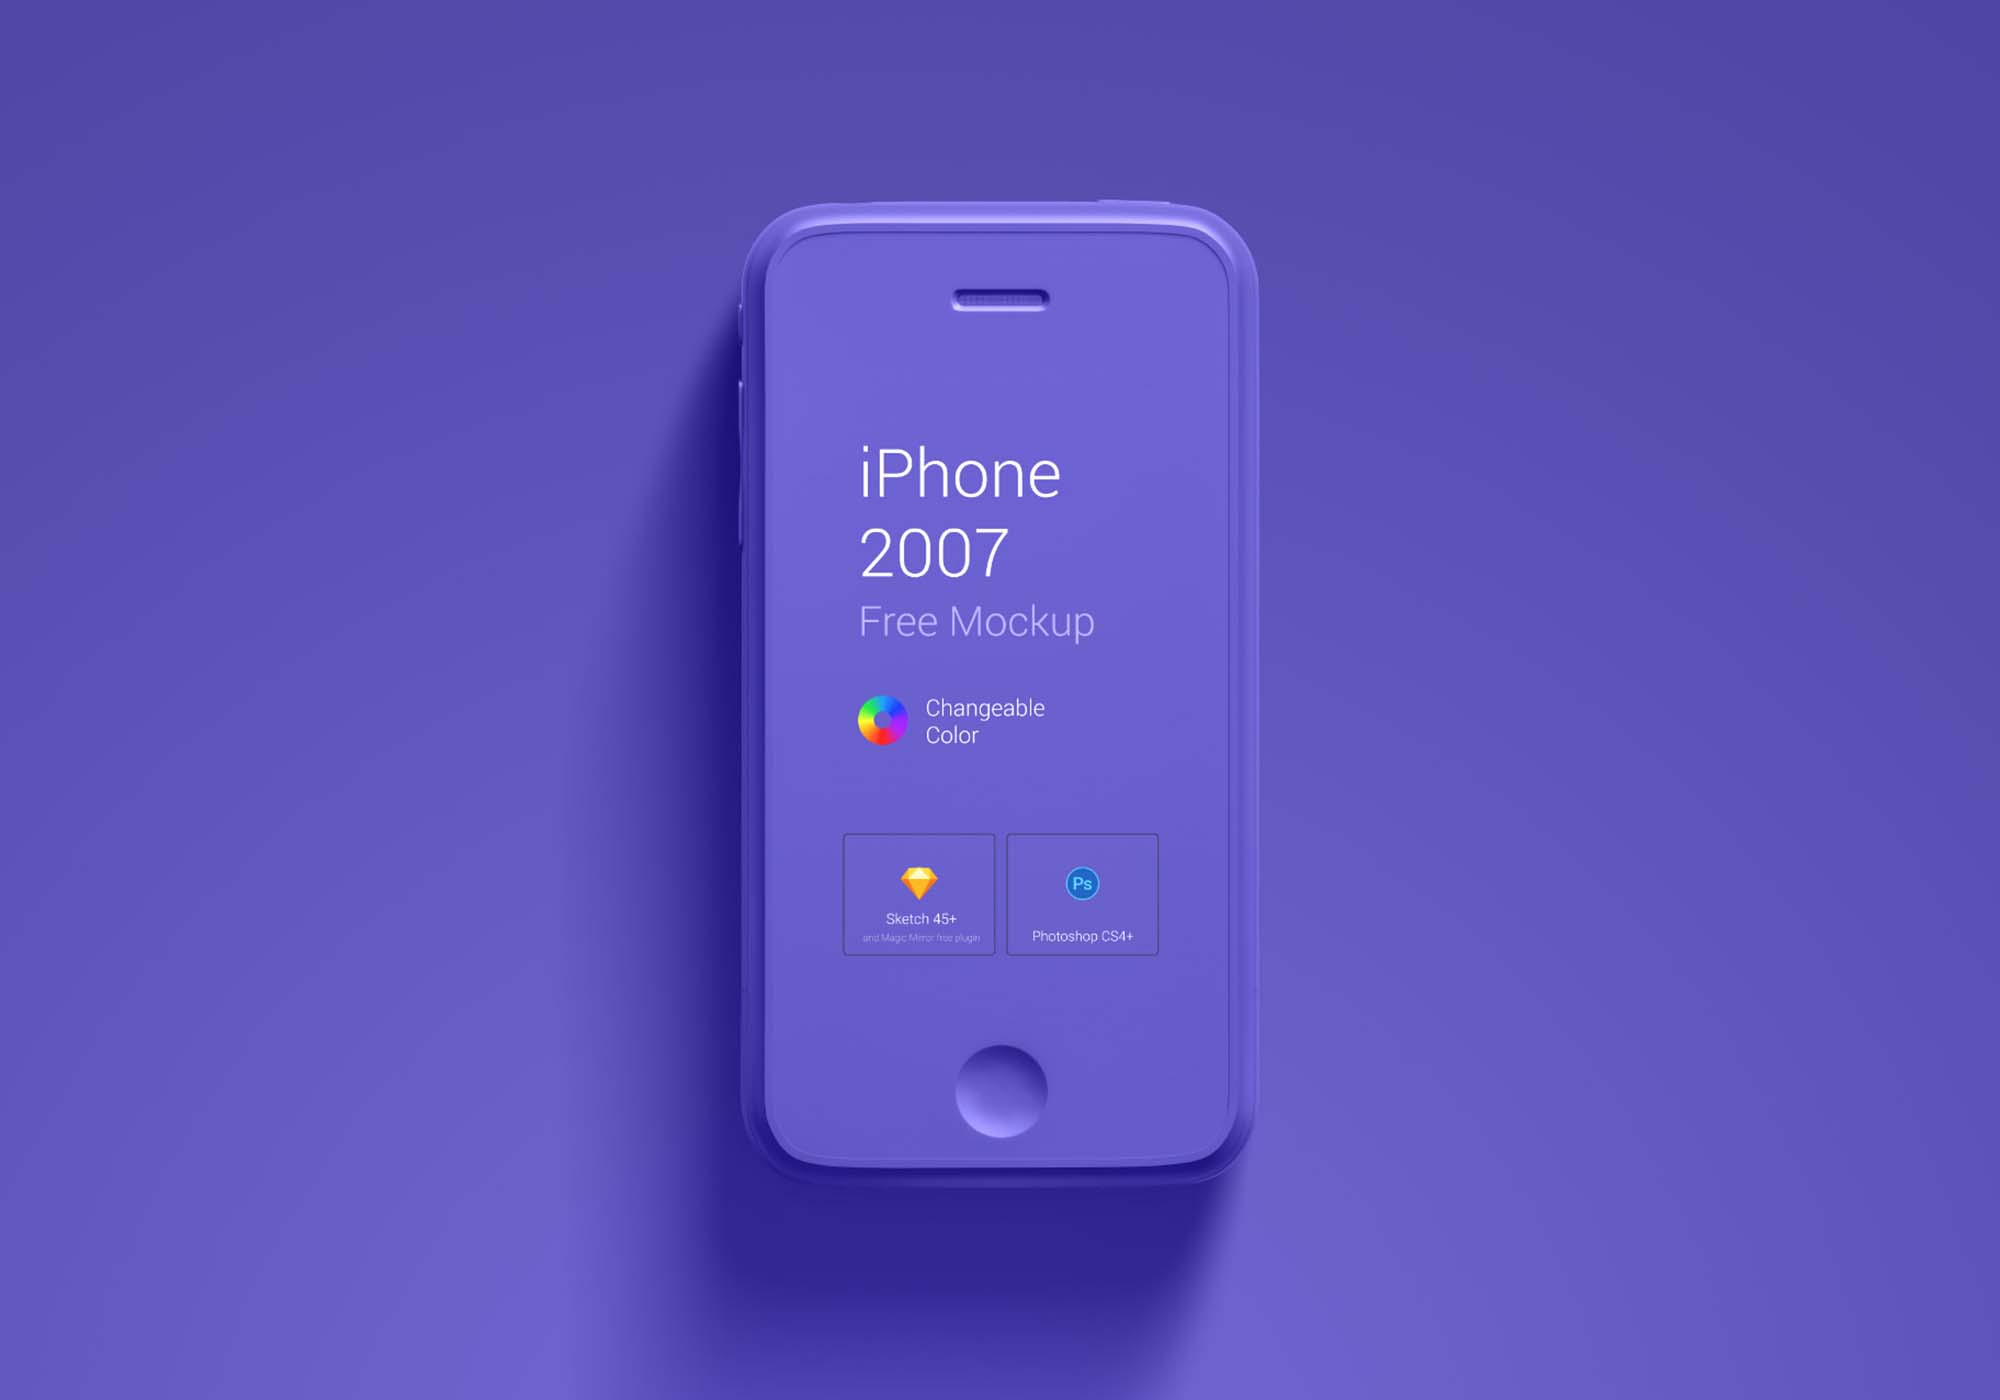 iPhone First Generation Mockup 2